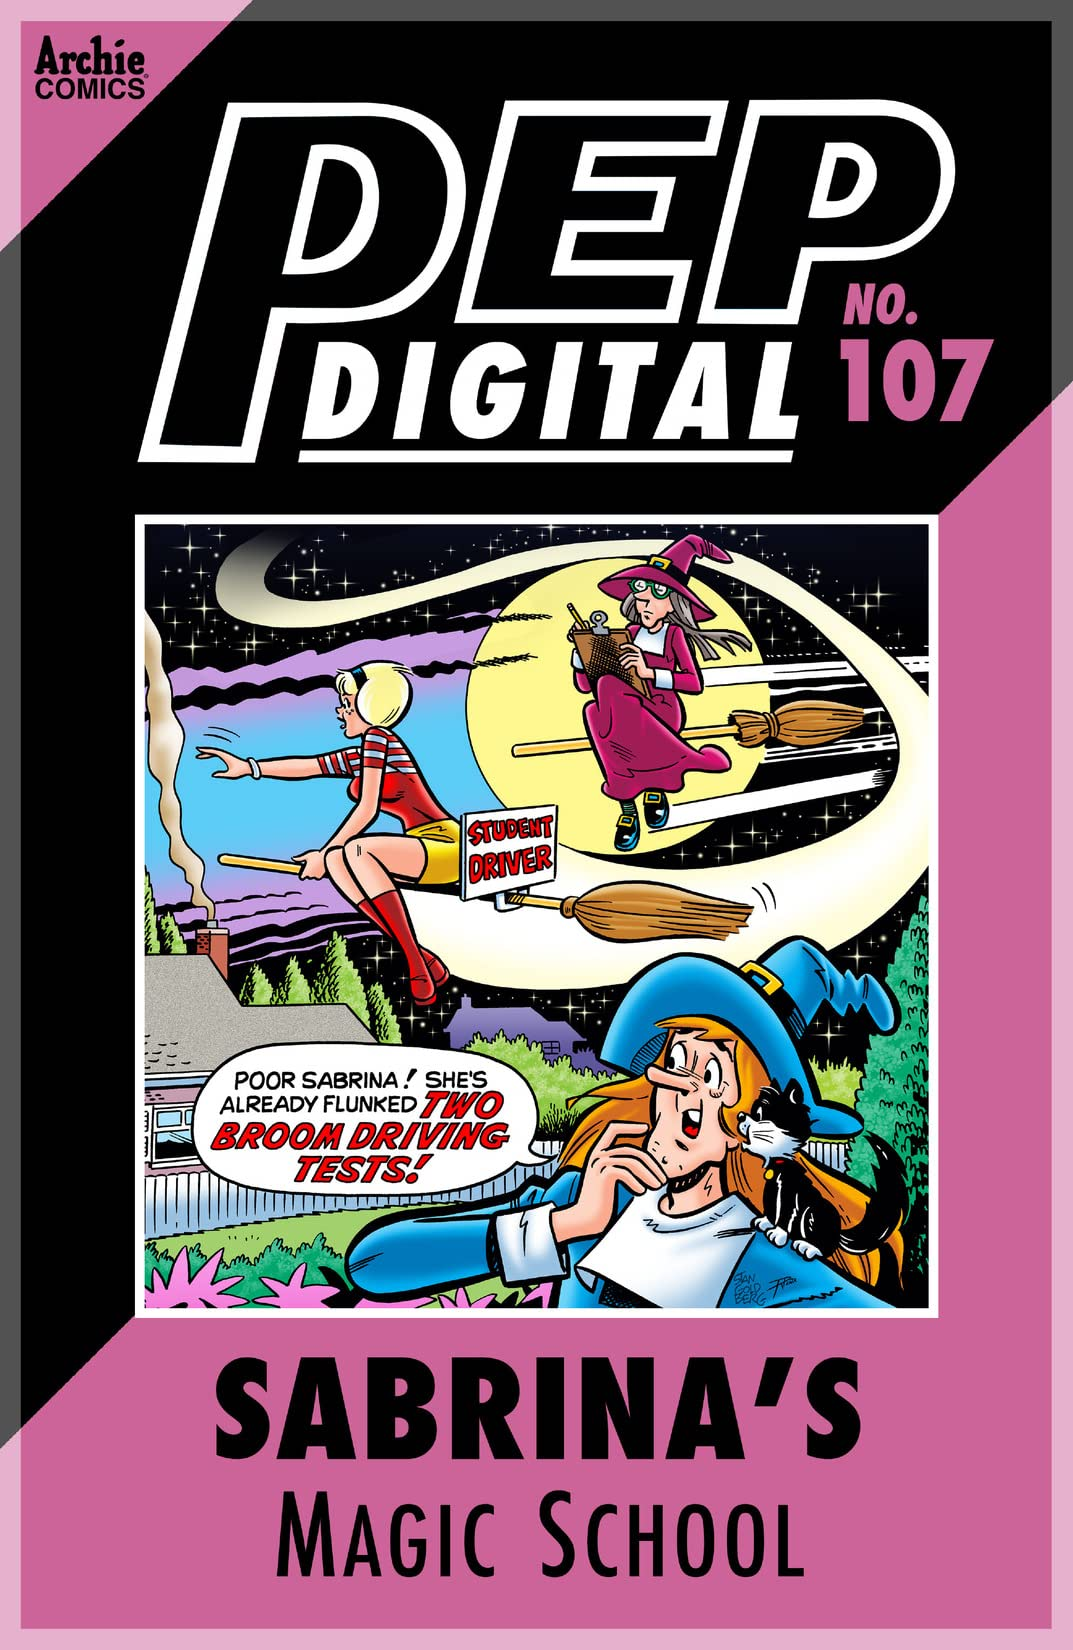 PEP Digital #107: Sabrina's Magic School